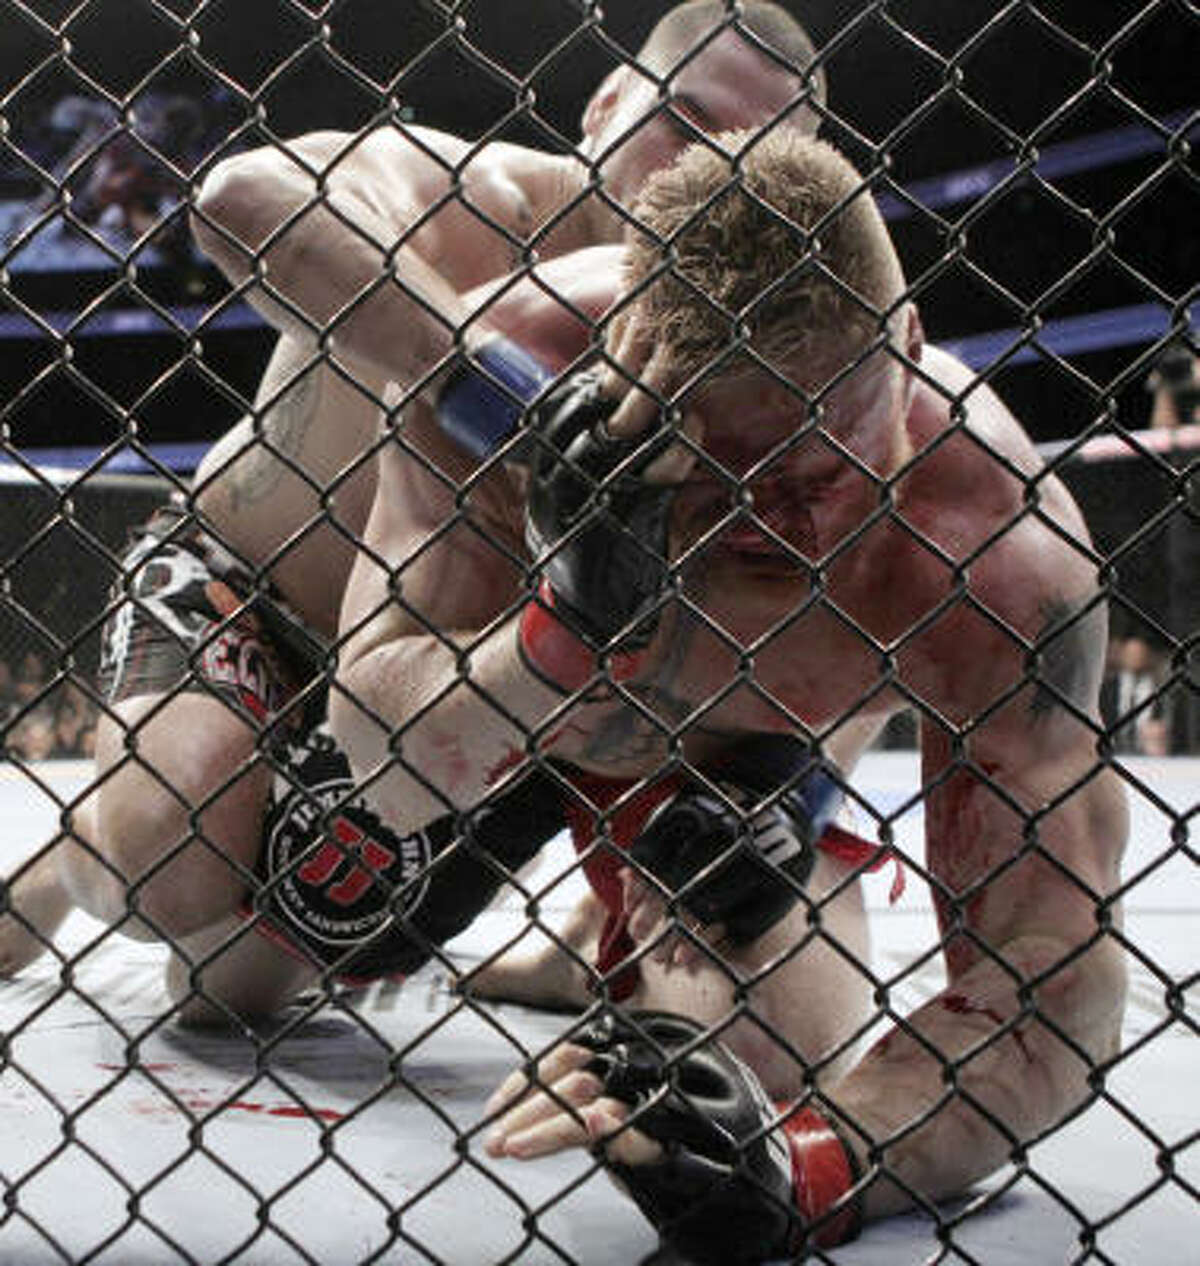 Cain Velasquez stopped Brock Lesnar late in the first round with a relentless flurry of punches to claim Lesnar's UFC heavyweight title.